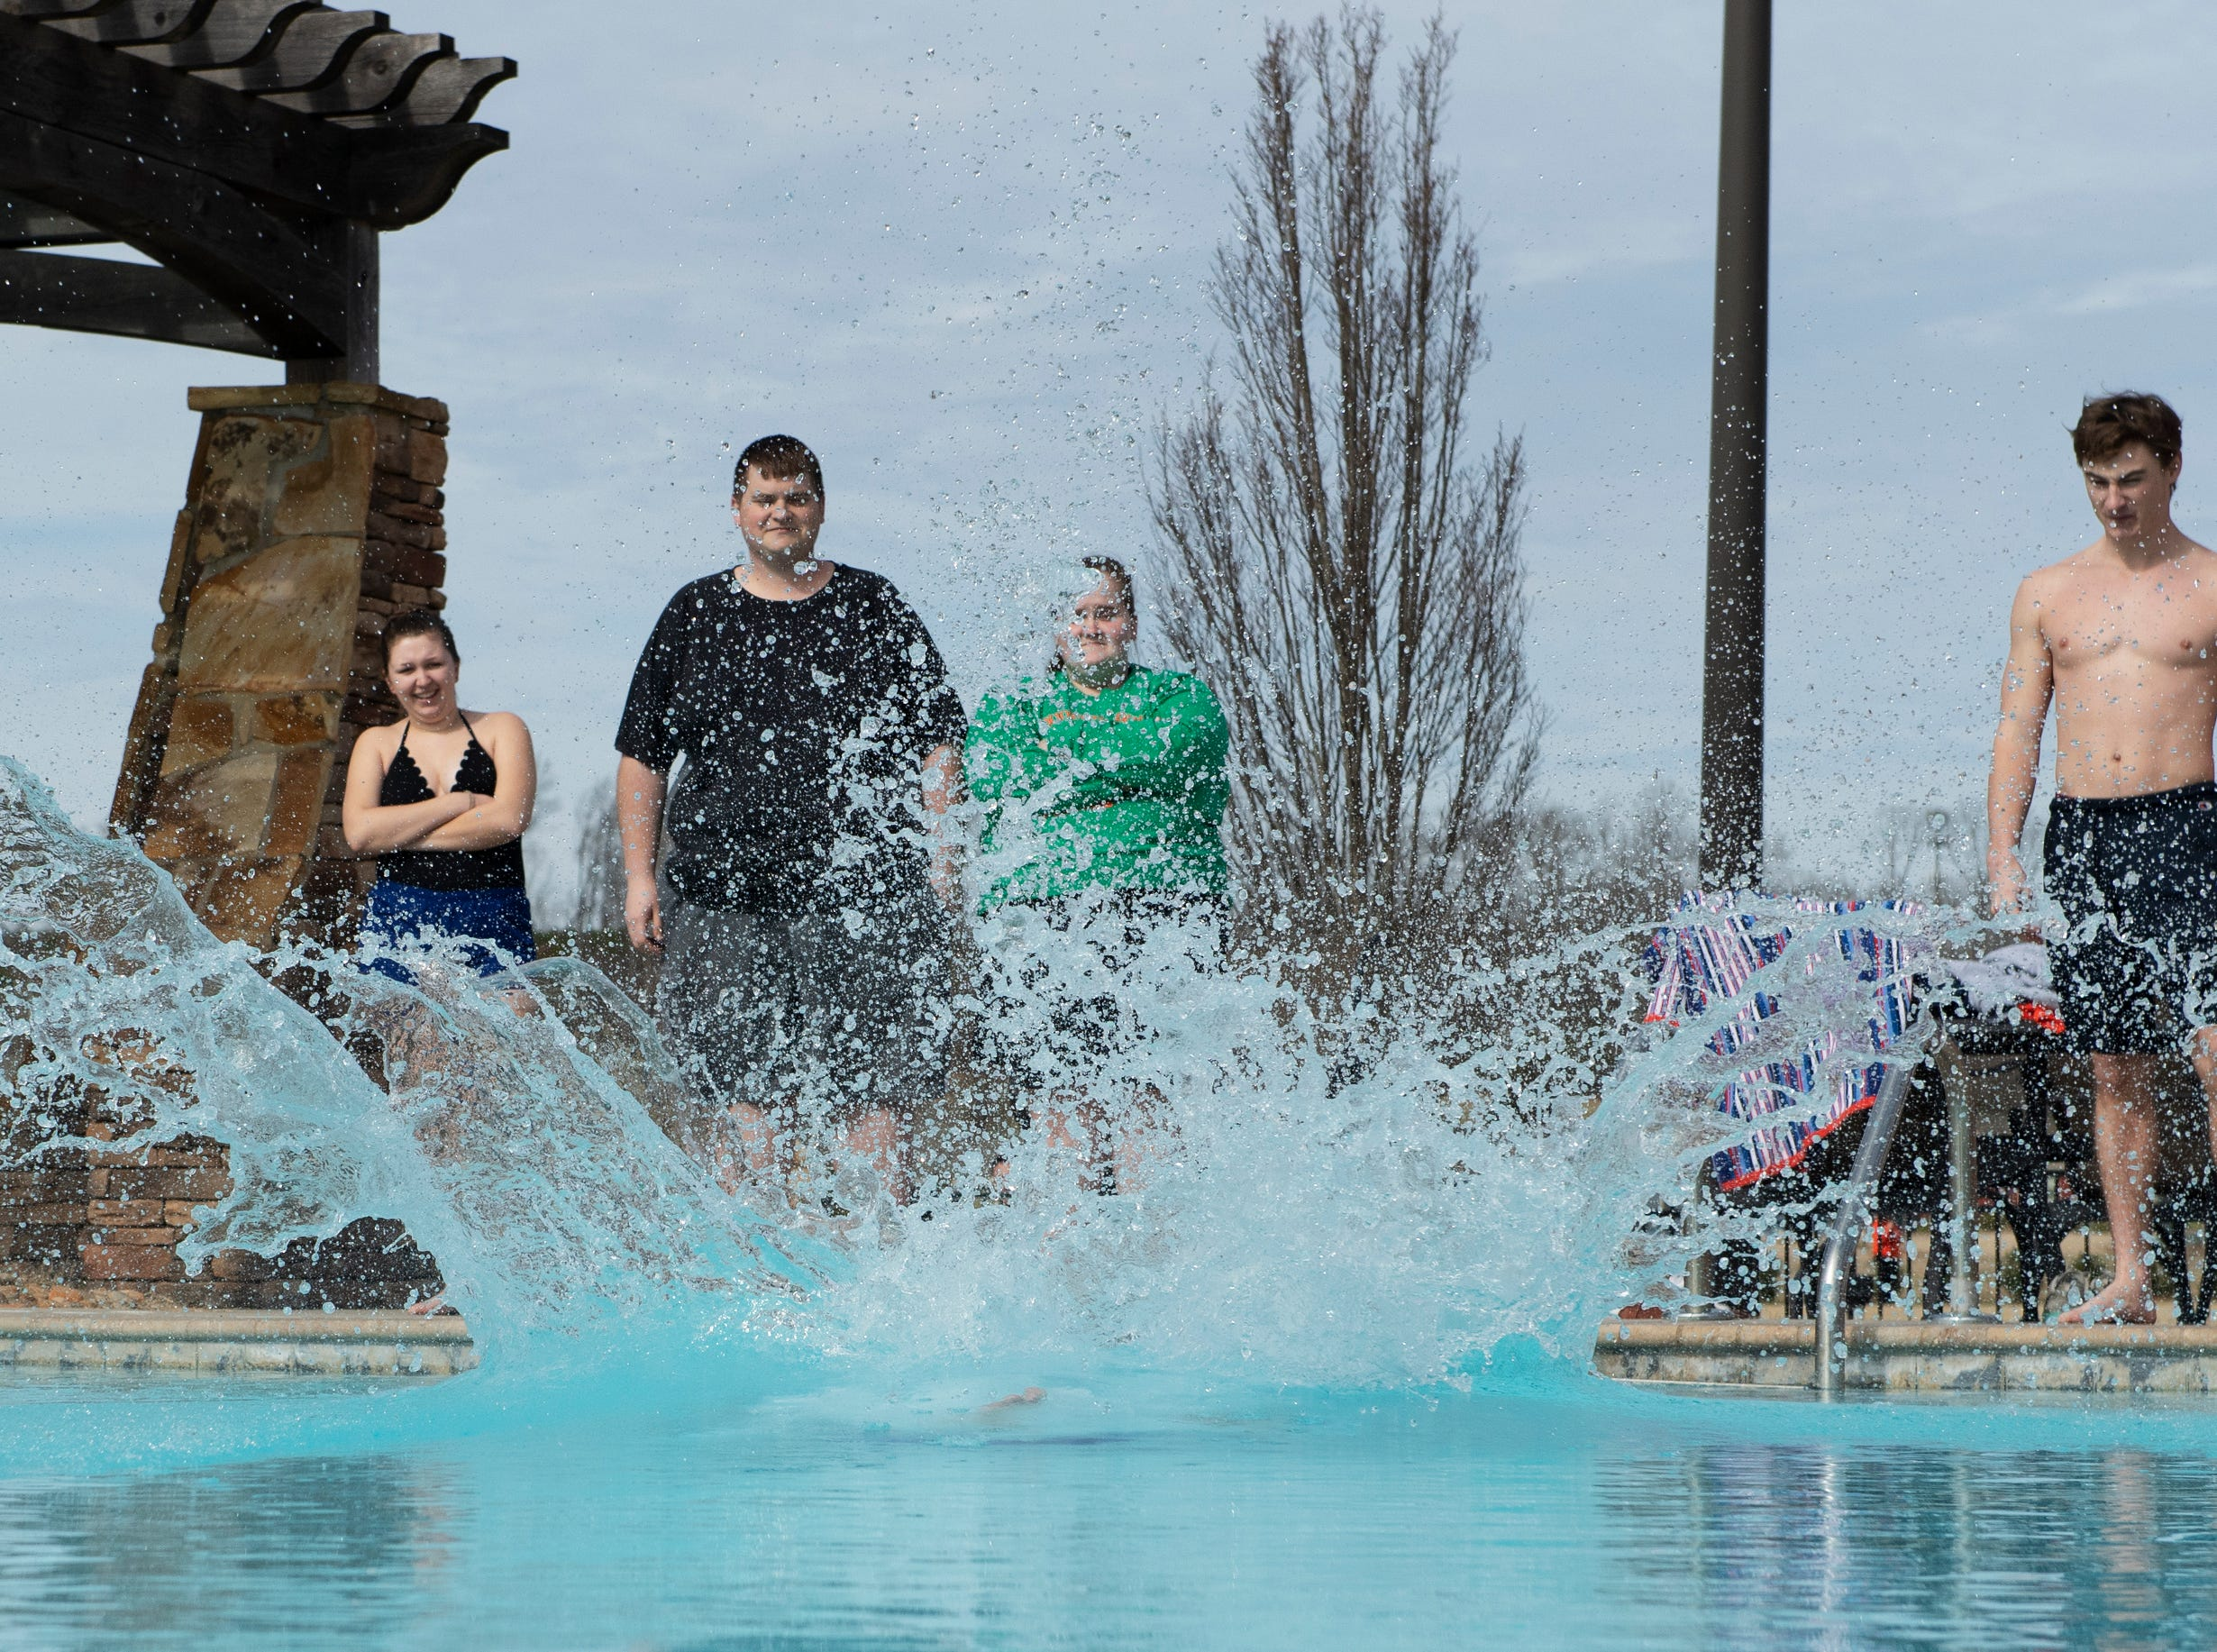 Shane Winslow jumps in to check the pool temperature before polar plungers enter the water for the 2019 Tiger Paw Polar Plunge at in the pool at The Pier housing complex in Seneca Saturday, Feb. 9, 2019. He read that the water was 58 degrees.